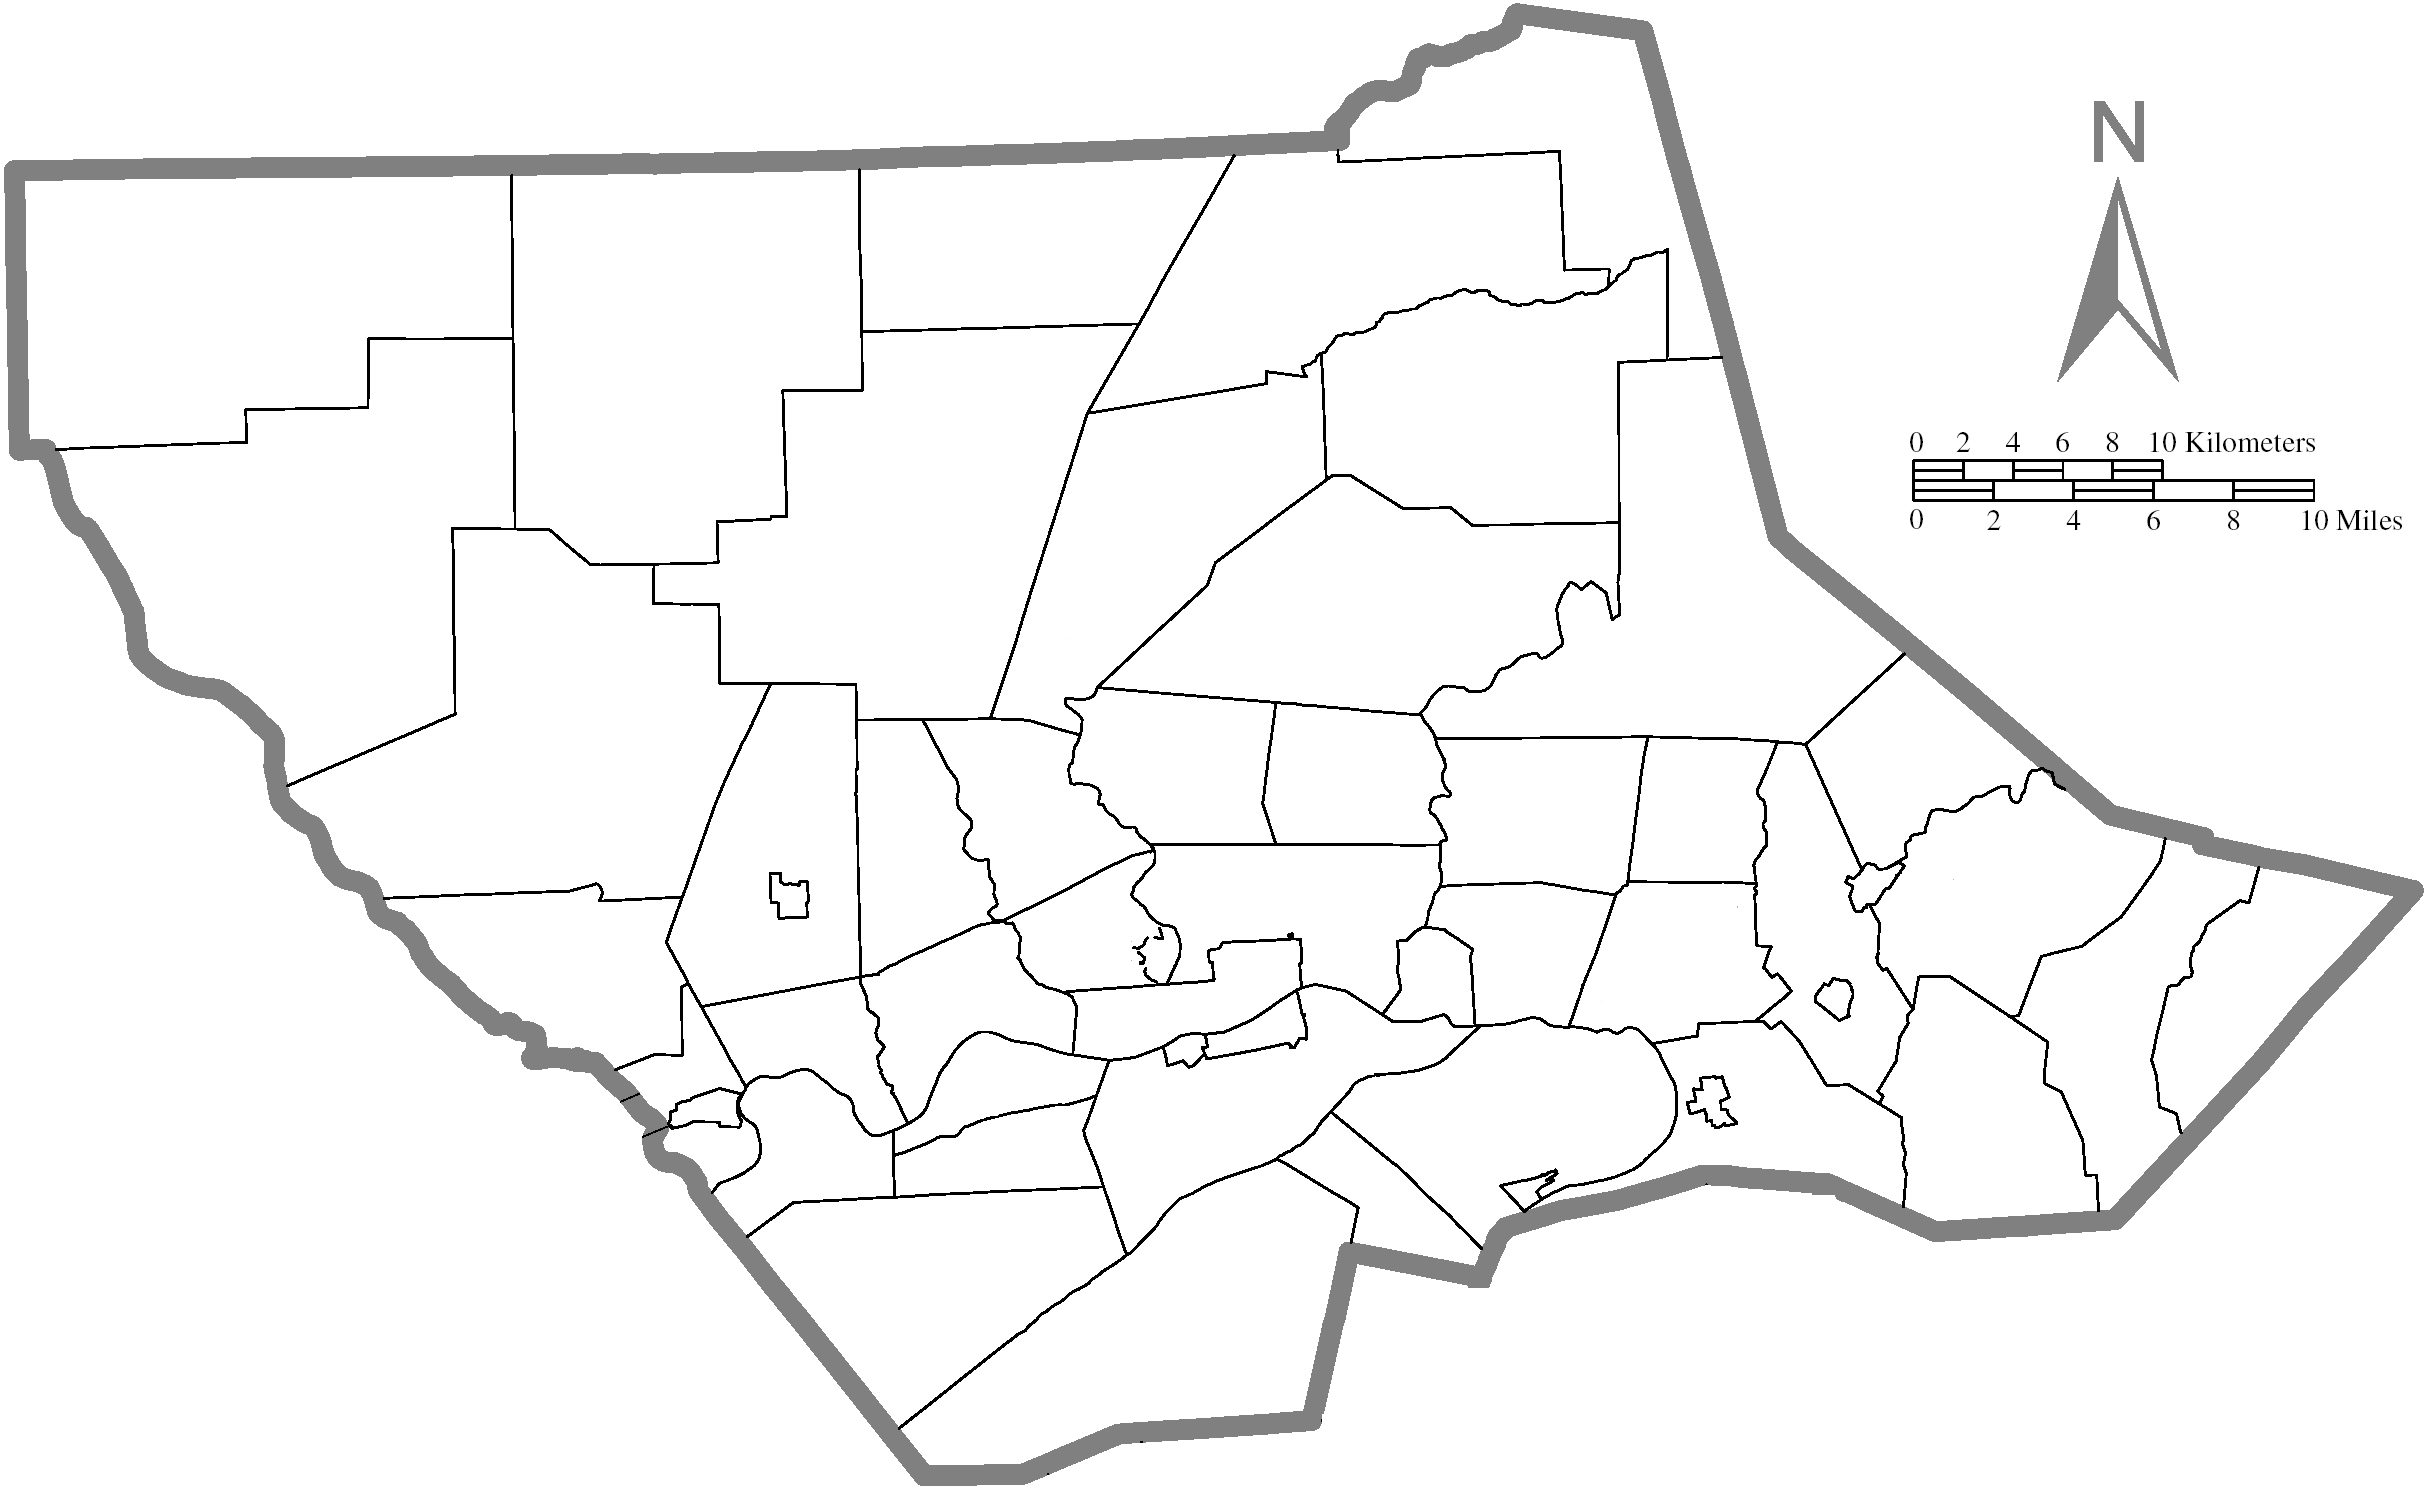 File:Map of Lycoming County, Pennsylvania All Blank.PNG